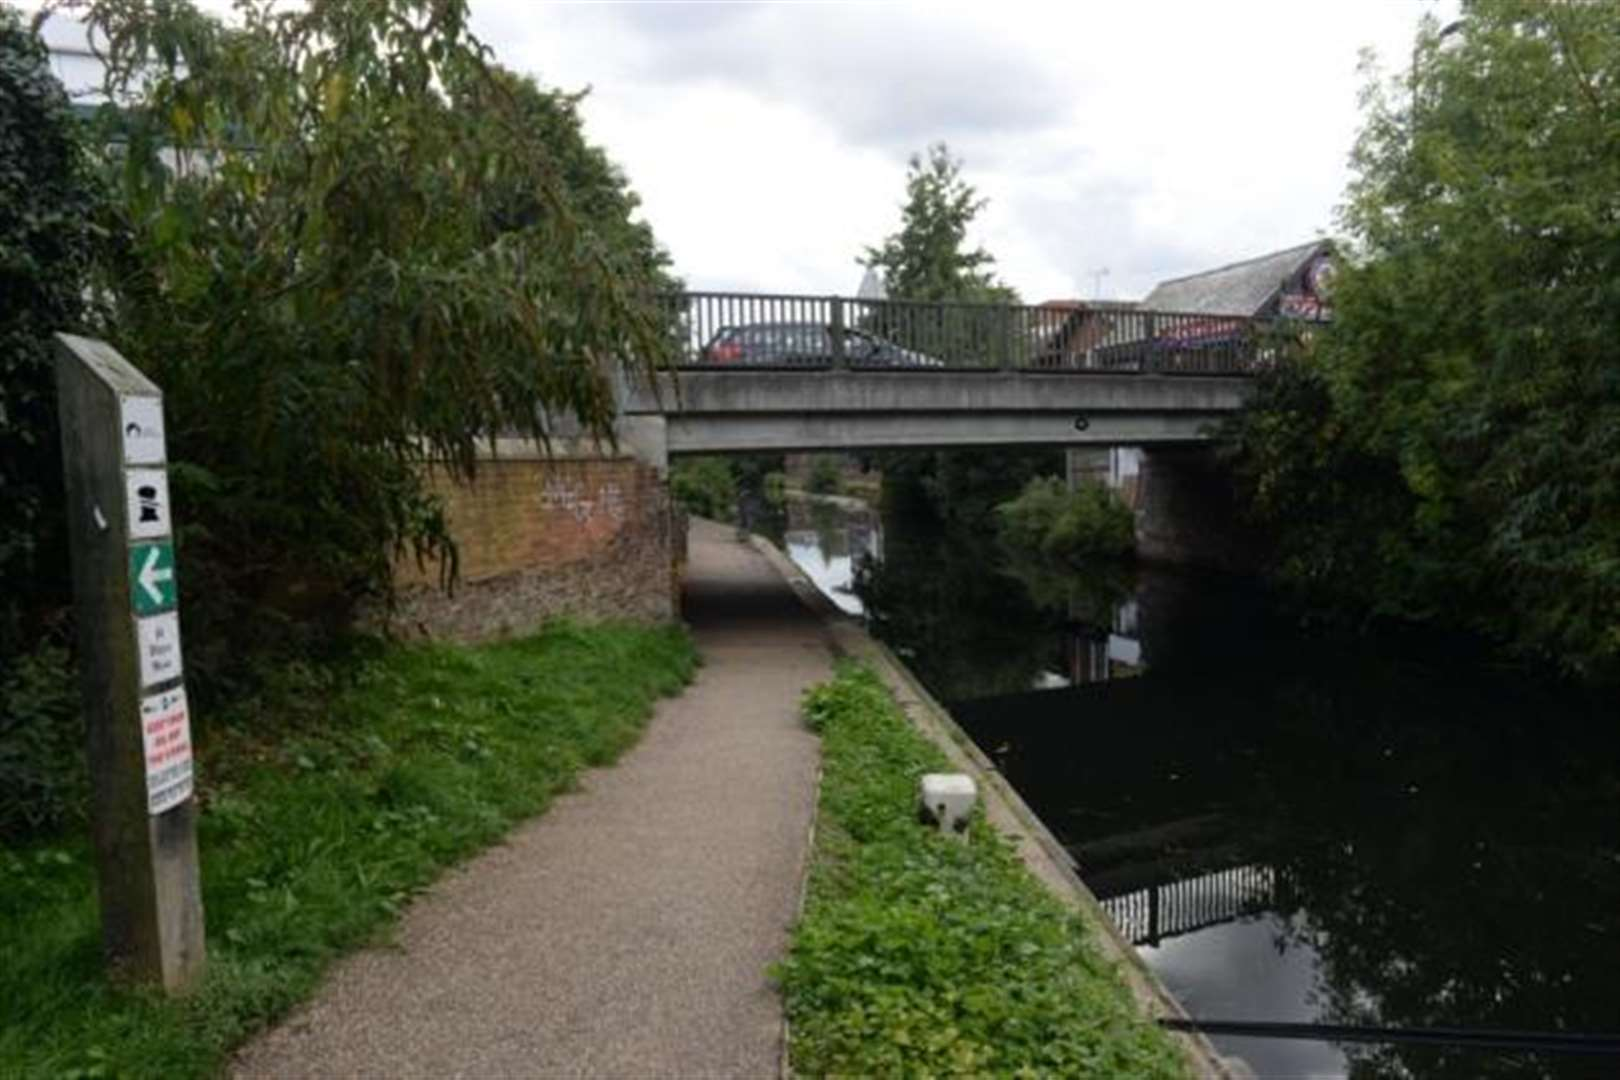 County allays concerns about Stortford bridge plans